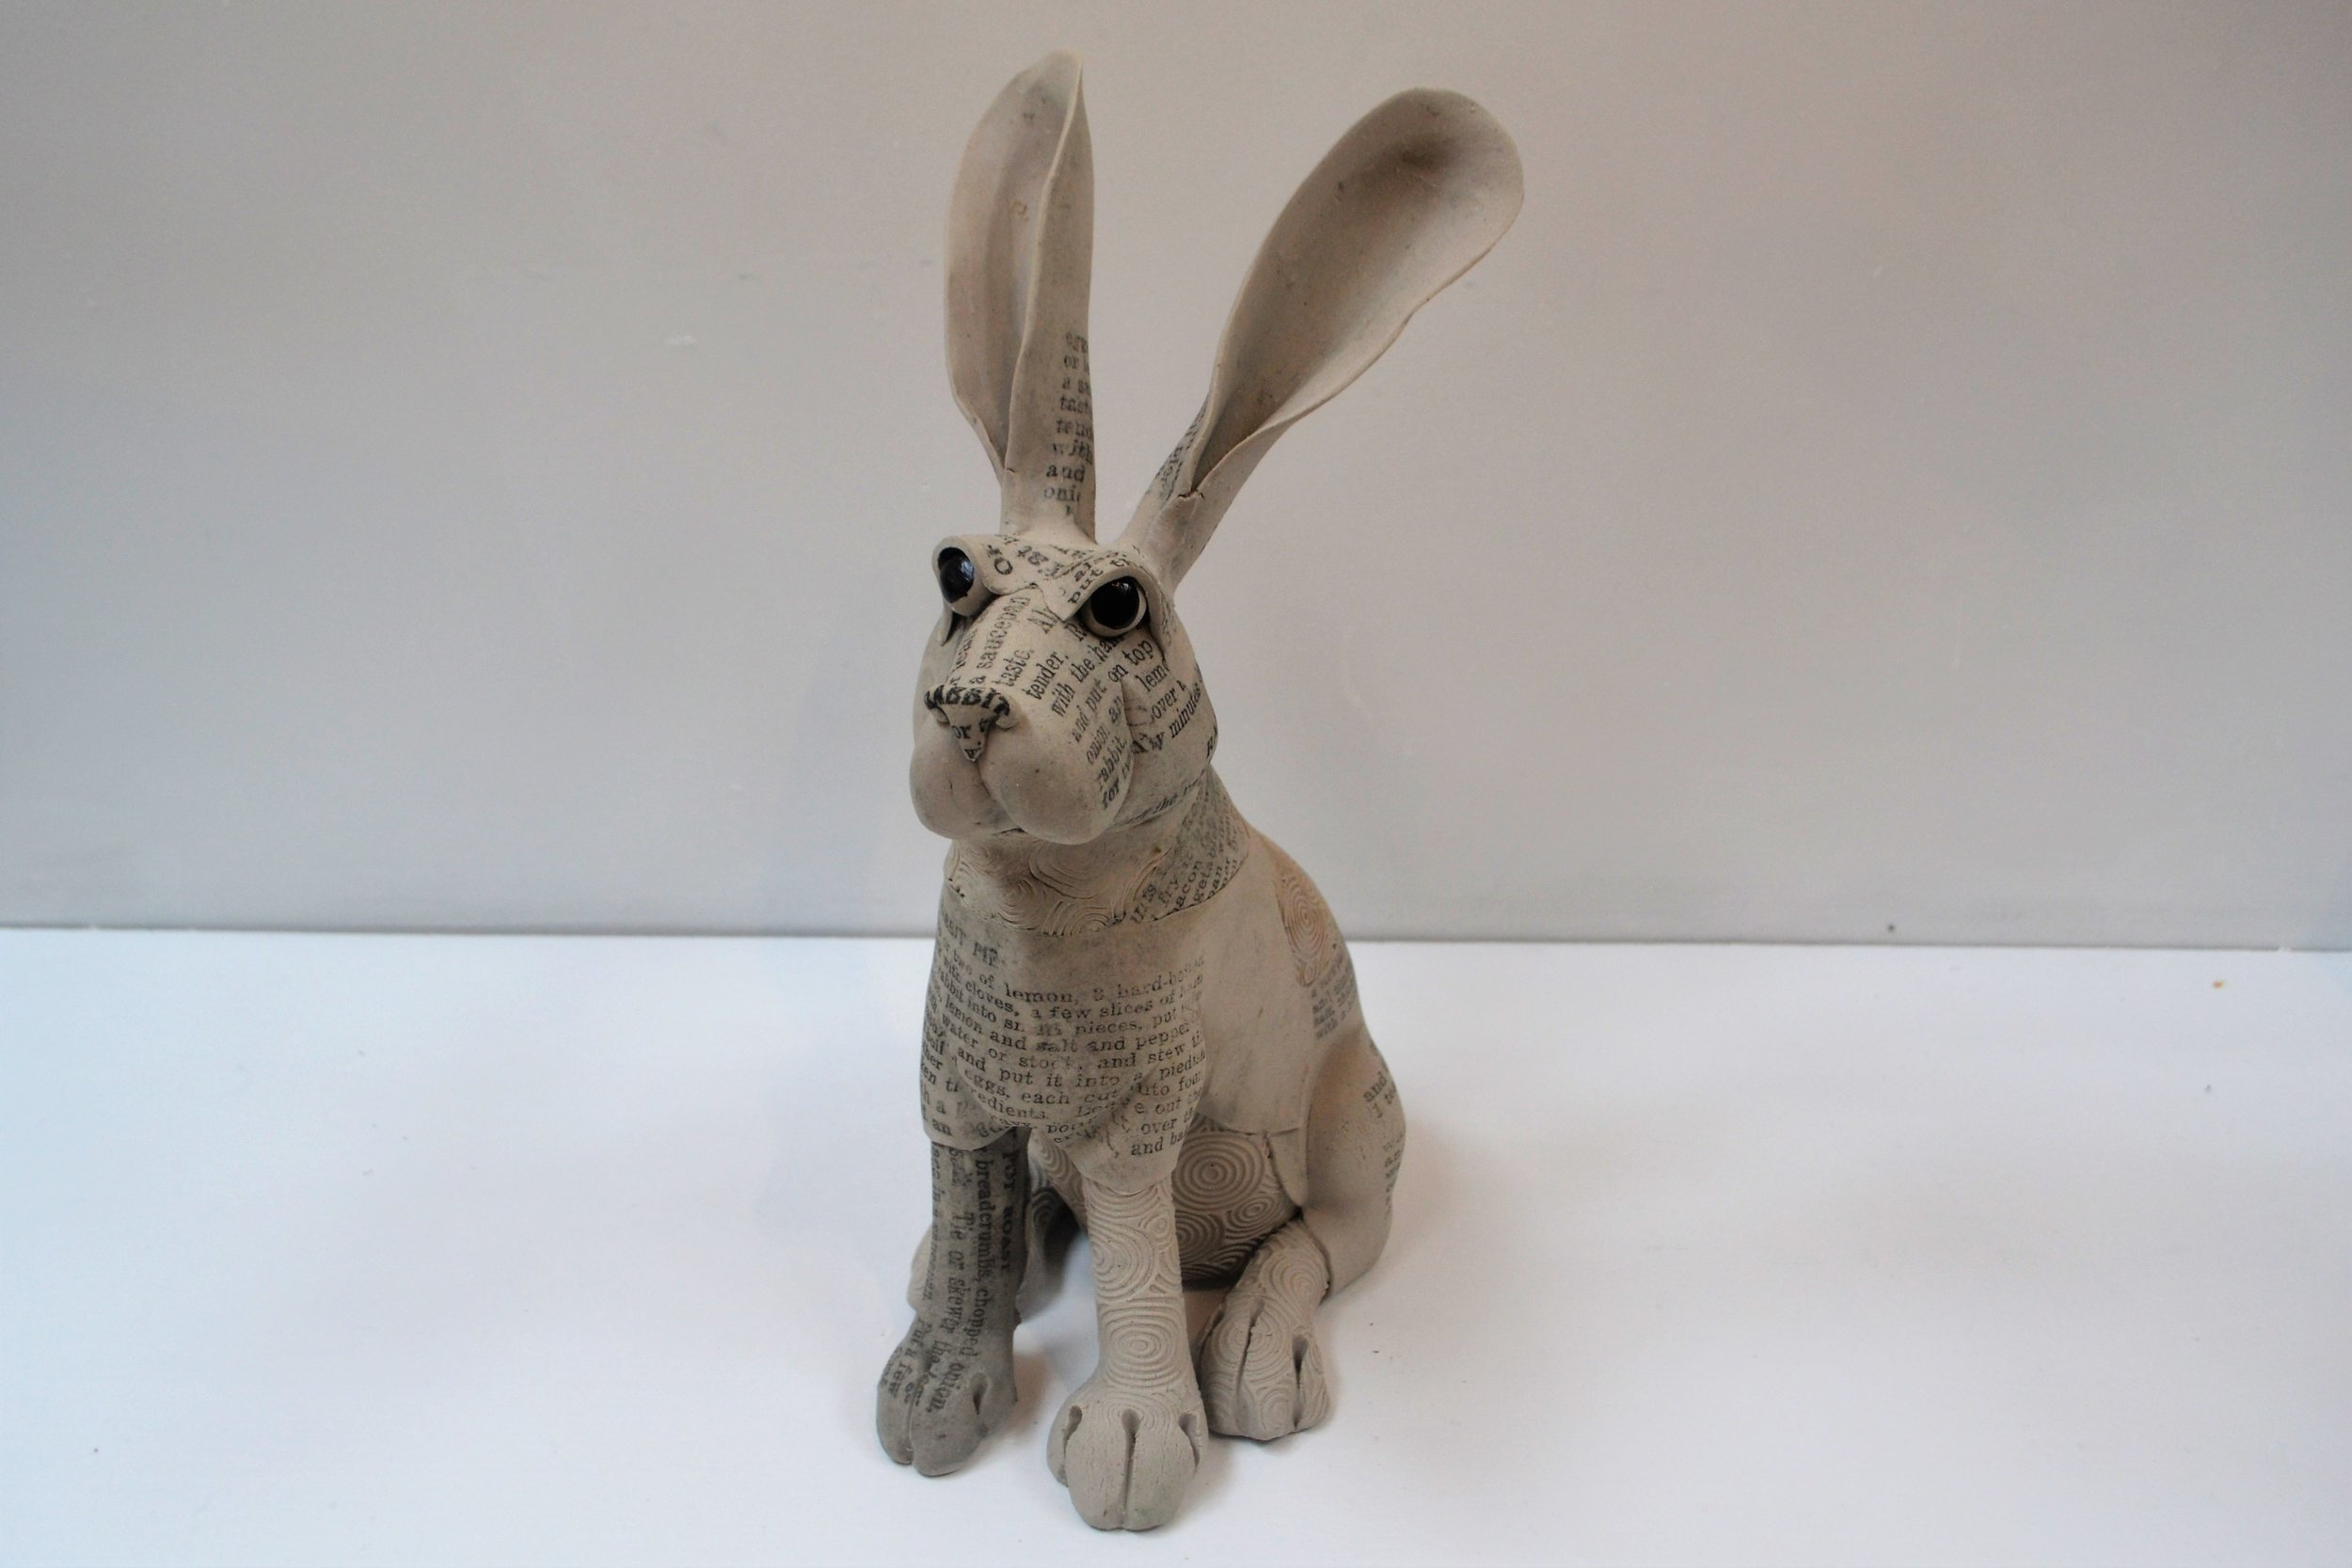 Small Recipe Rabbit I  Fiona Tunnicliffe, hand formed ceramic sculpture, 320mm height  sold